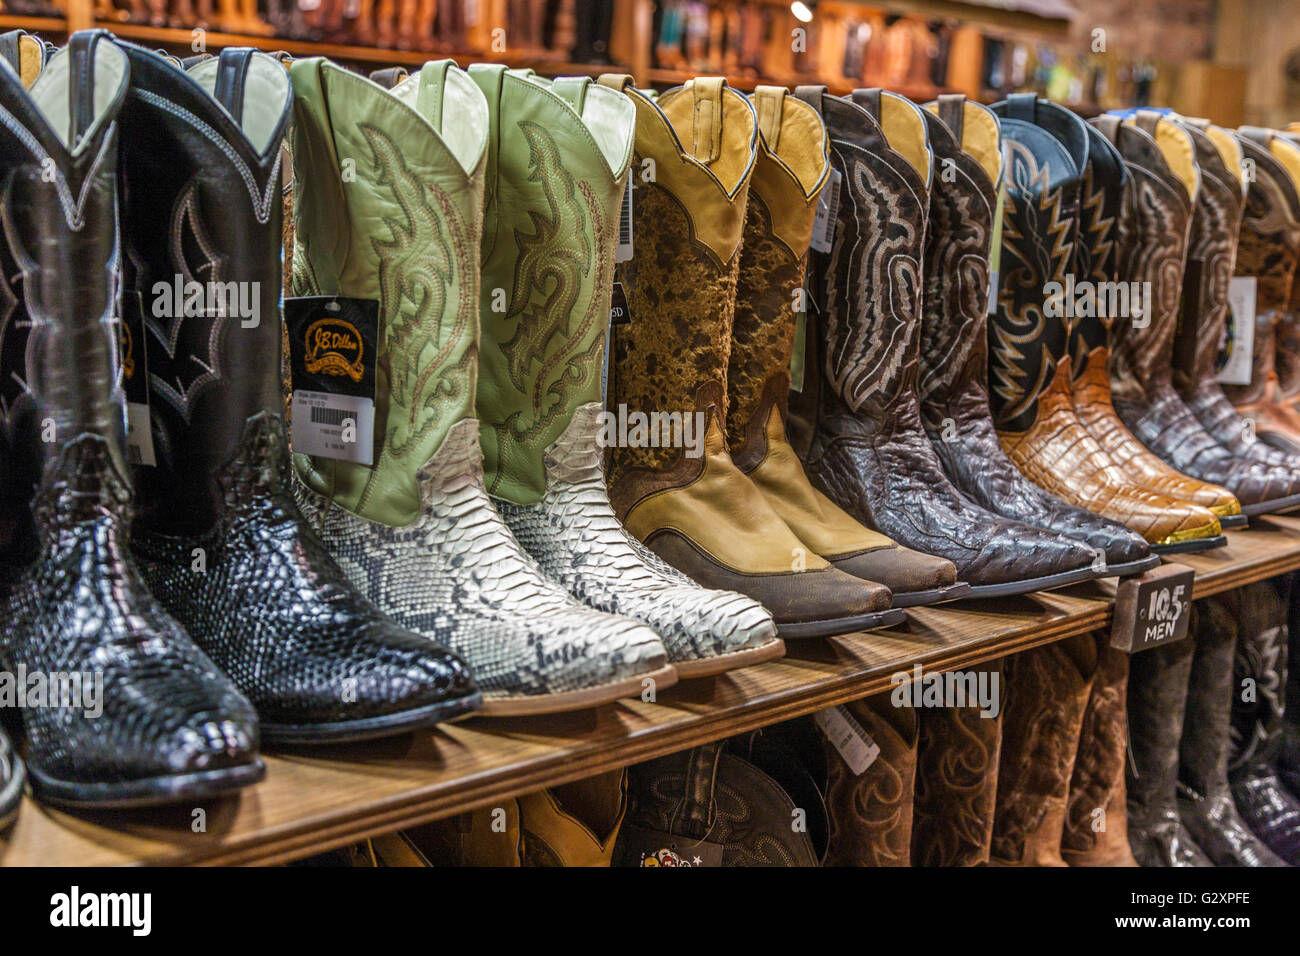 Large variety of cowboy boots for sale at boot store in downtown Nashville, Tennessee - Stock Image